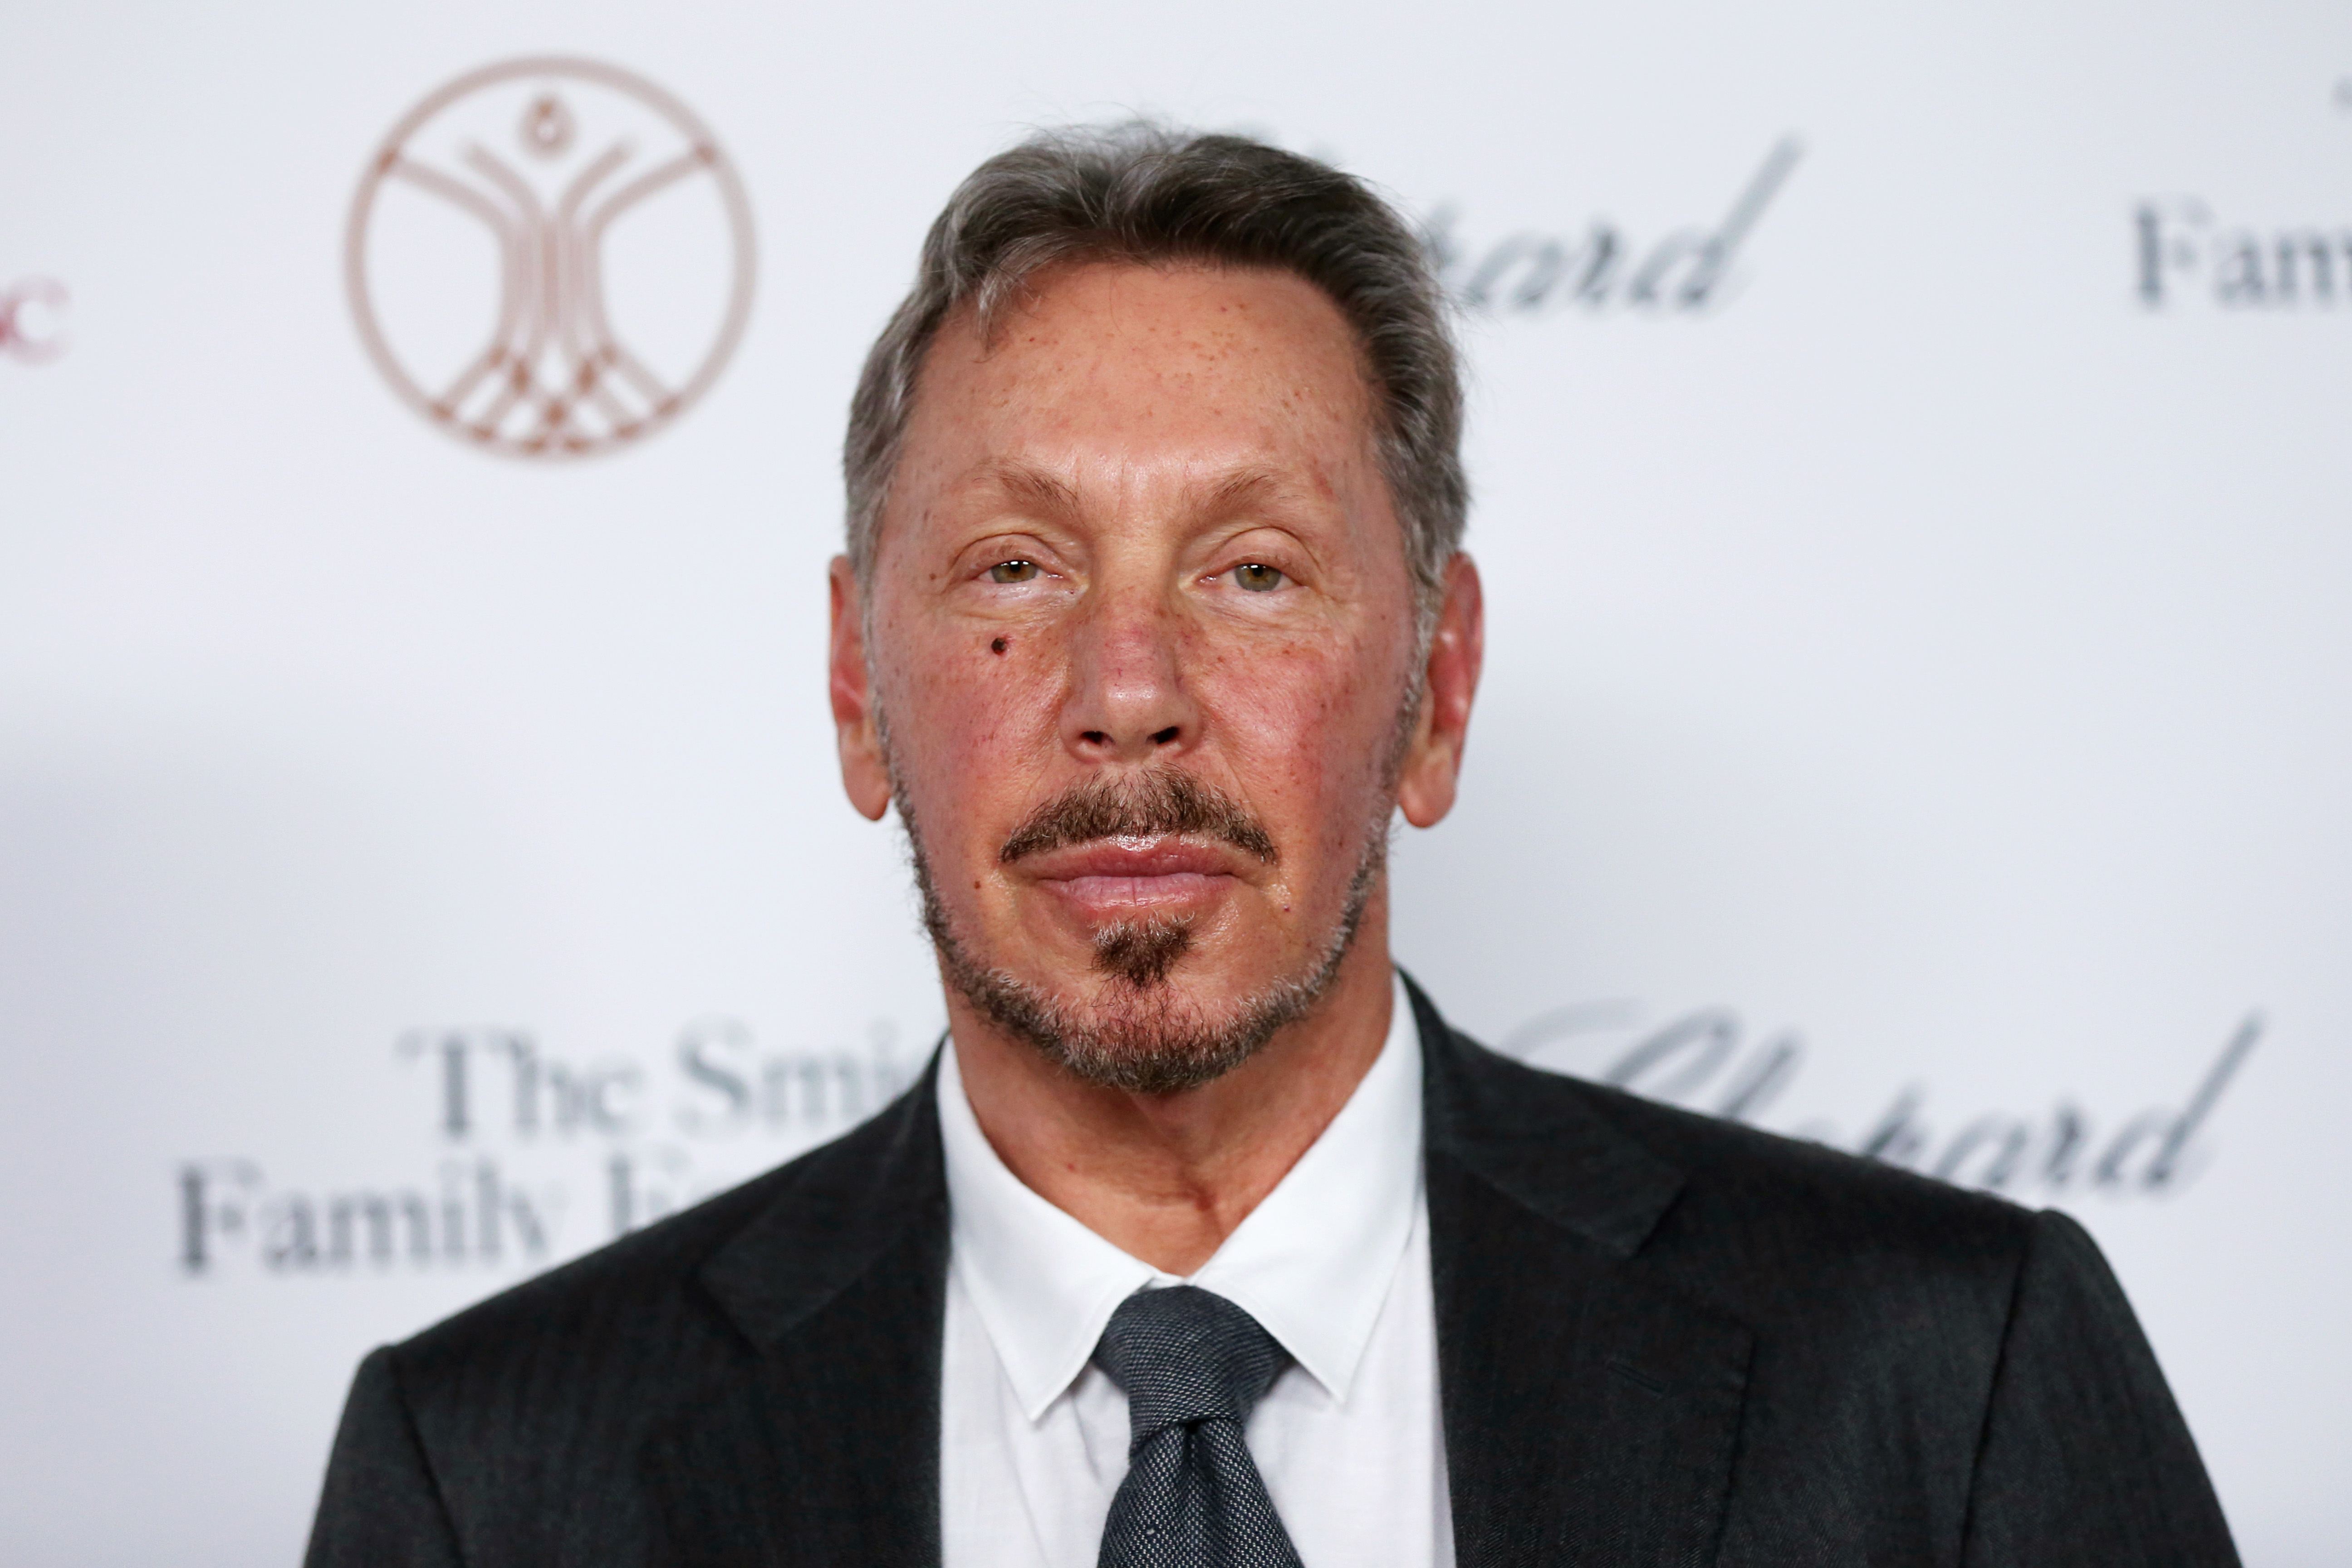 Larry Ellison attends the Rebels With A Cause Gala 2019 at Lawrence J Ellison Institute for Transformative Medicine of USC on October 24, 2019, in Los Angeles, California.